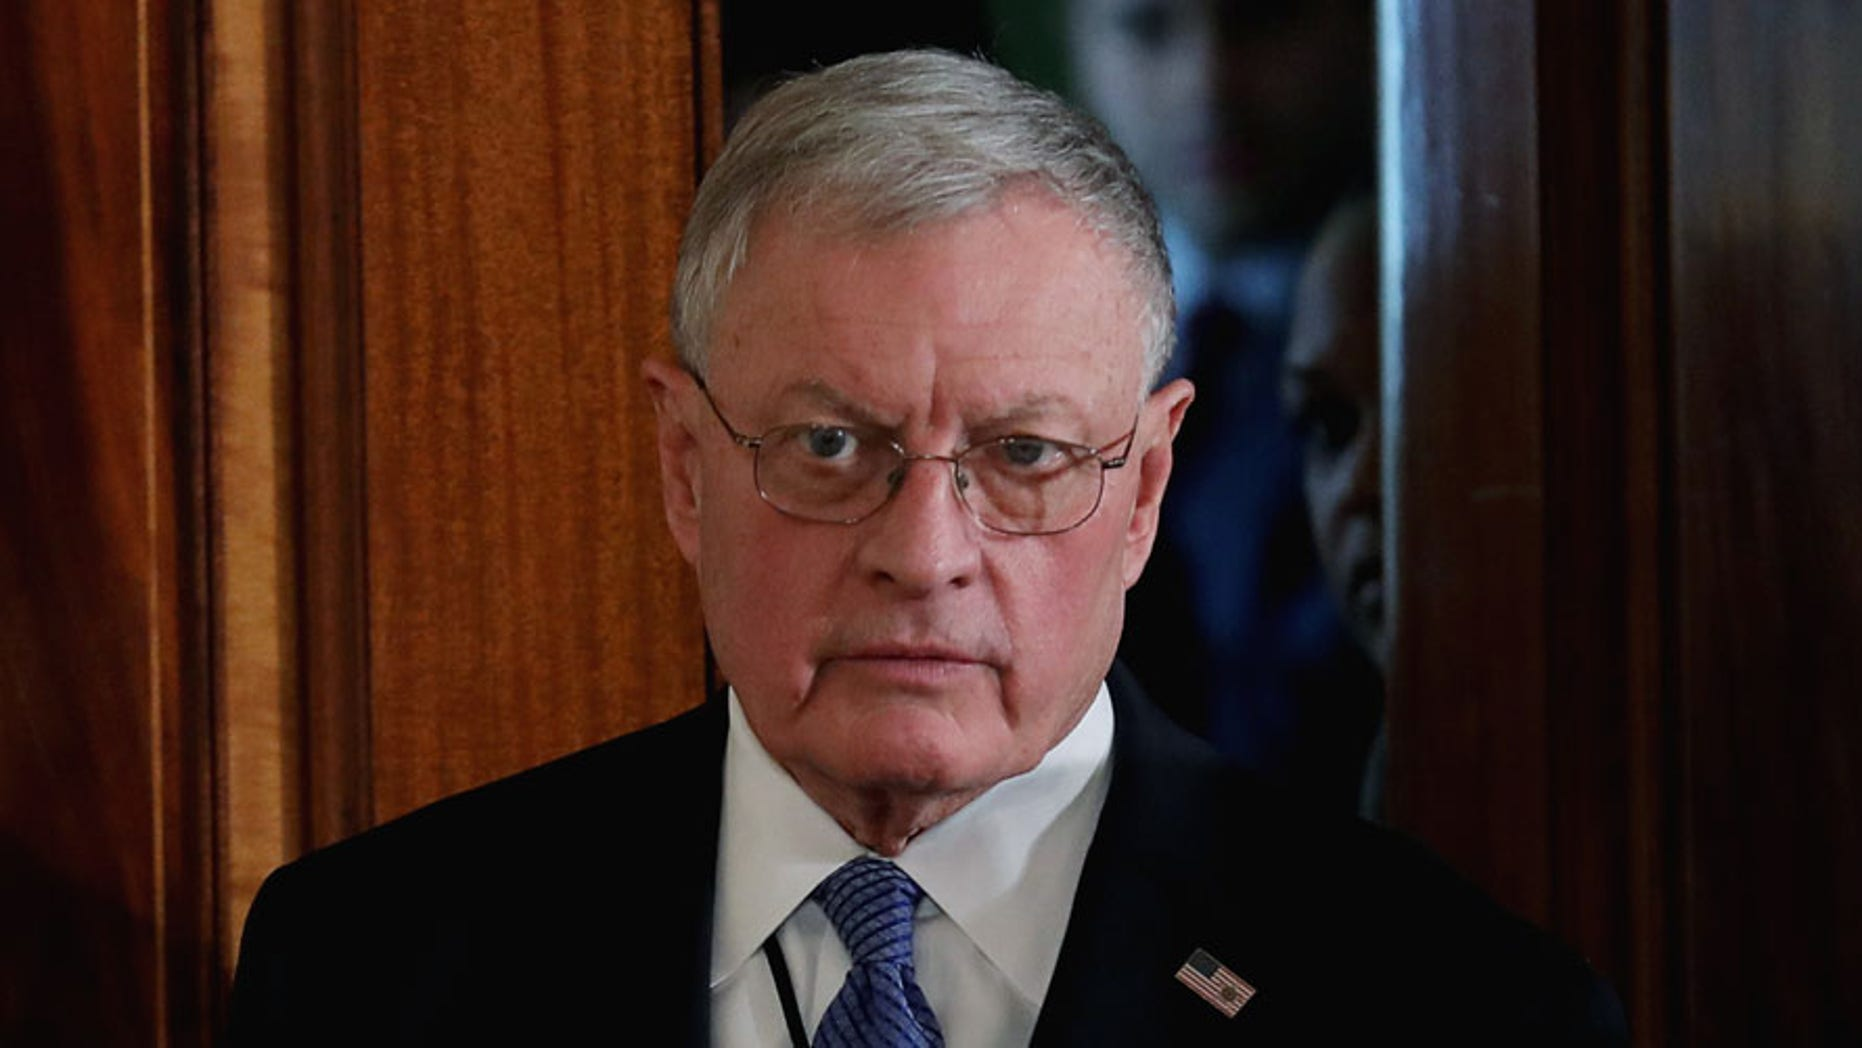 Retired Gen. Keith Kellogg is seen at the White House in this Feb. 15, 2017 file photo.